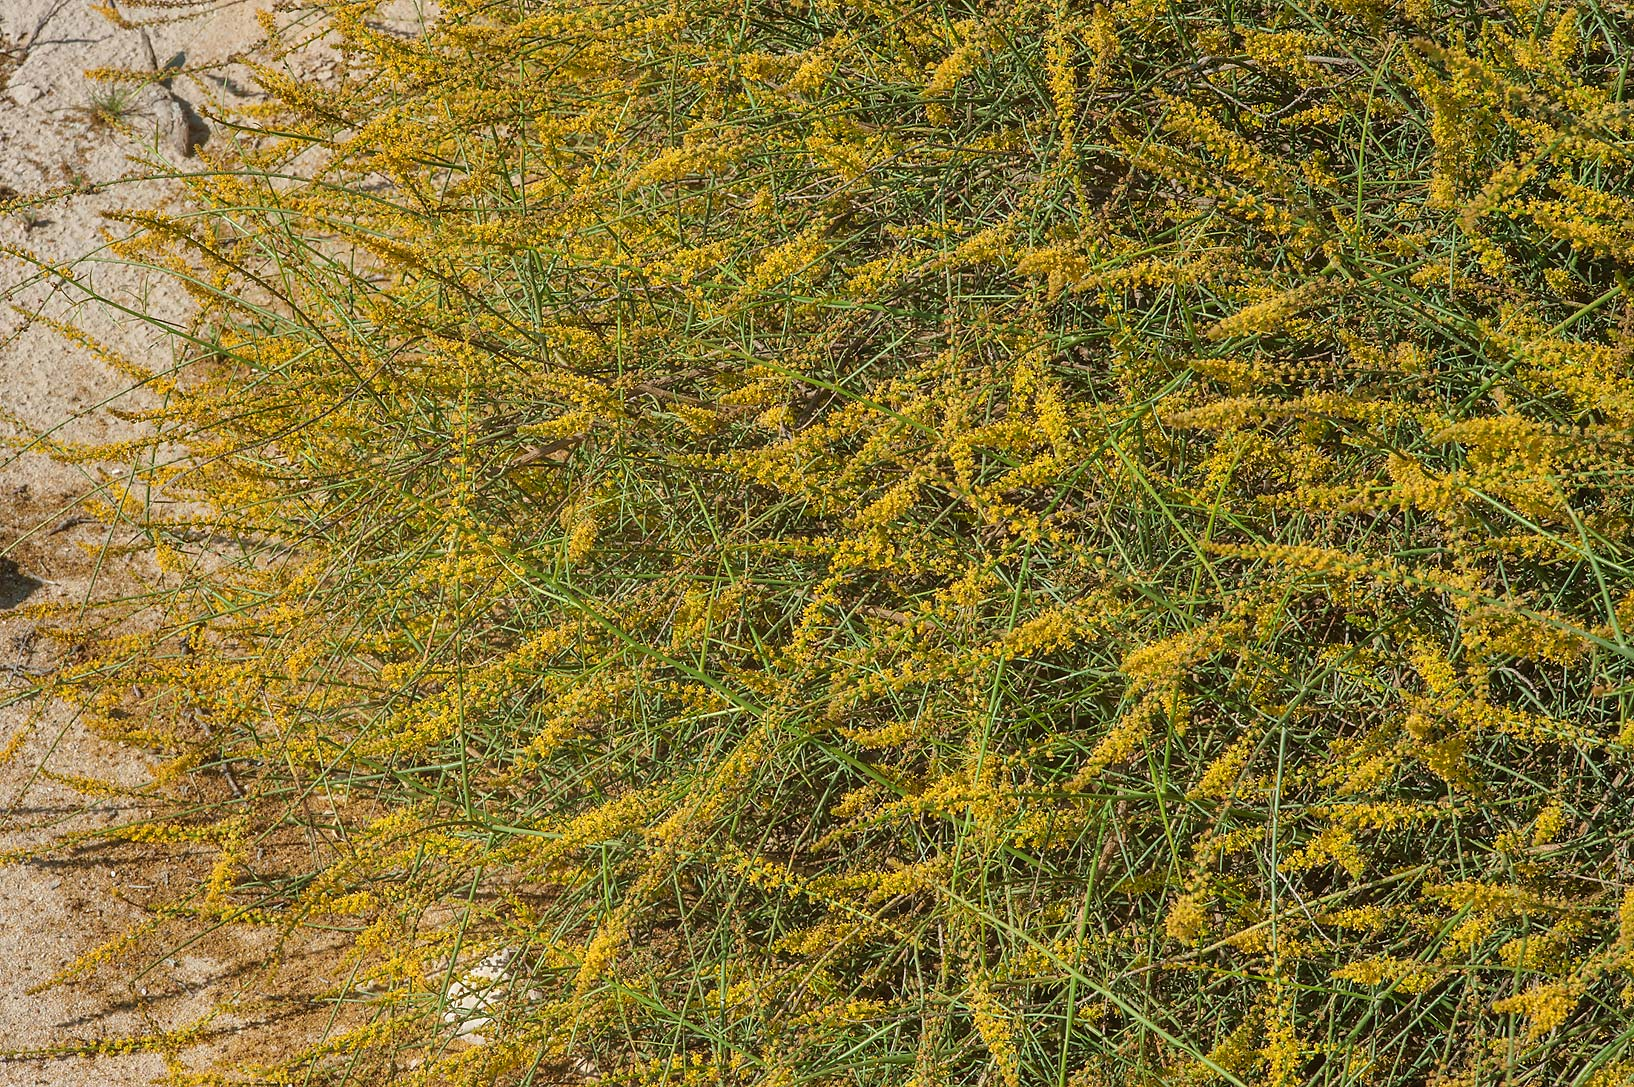 Bush of Ochradenus baccatus (local names qardi...in a runnel north from Dukhan. Qatar